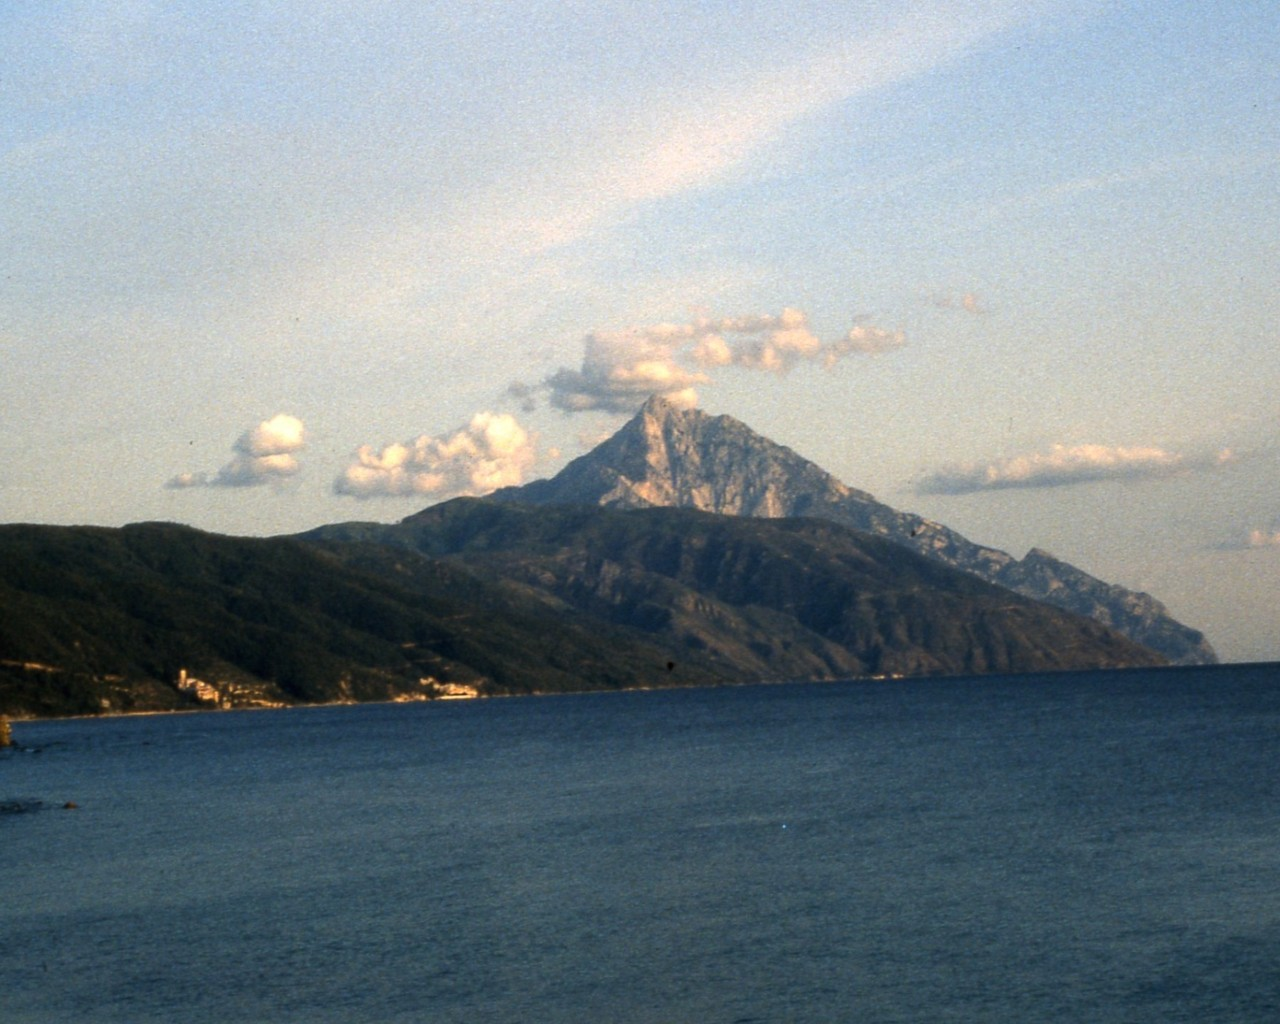 Agios_Oros_peak_Holy_Mount_Athos-with-seacoast-monasteries-picture